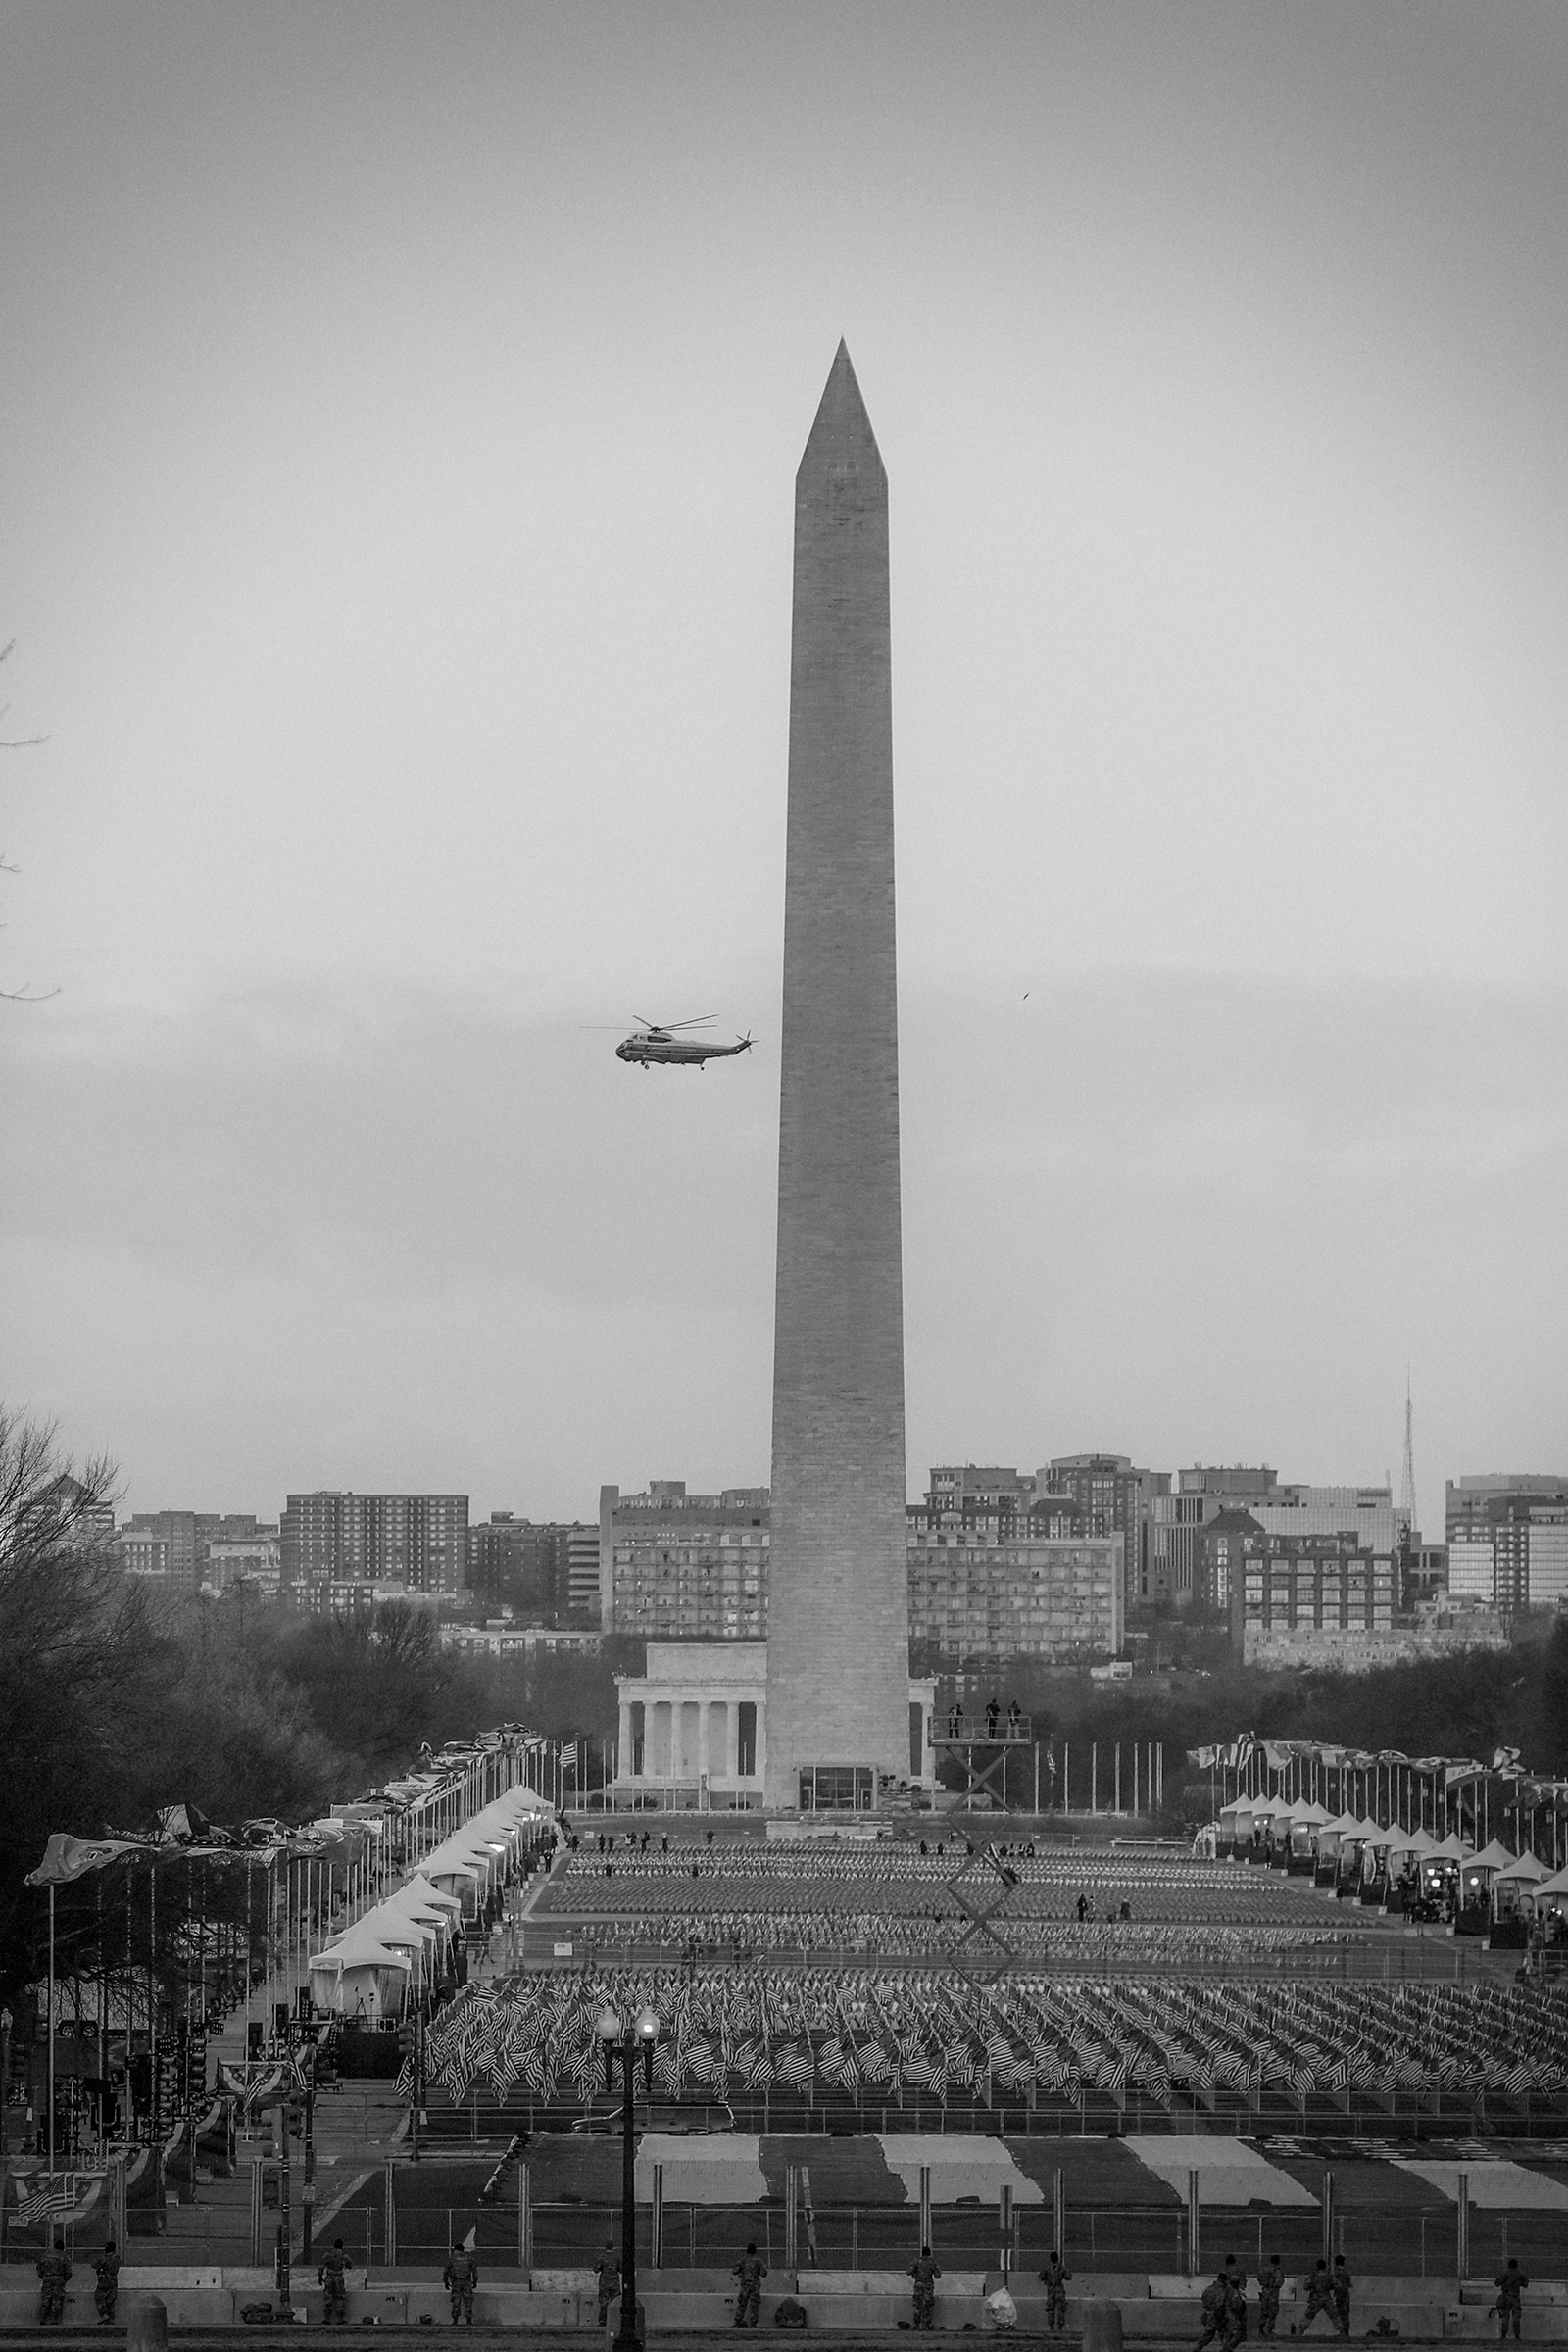 Marine One circles the National Mall carrying Donald Trump as he departs the White House ahead of the inauguration.